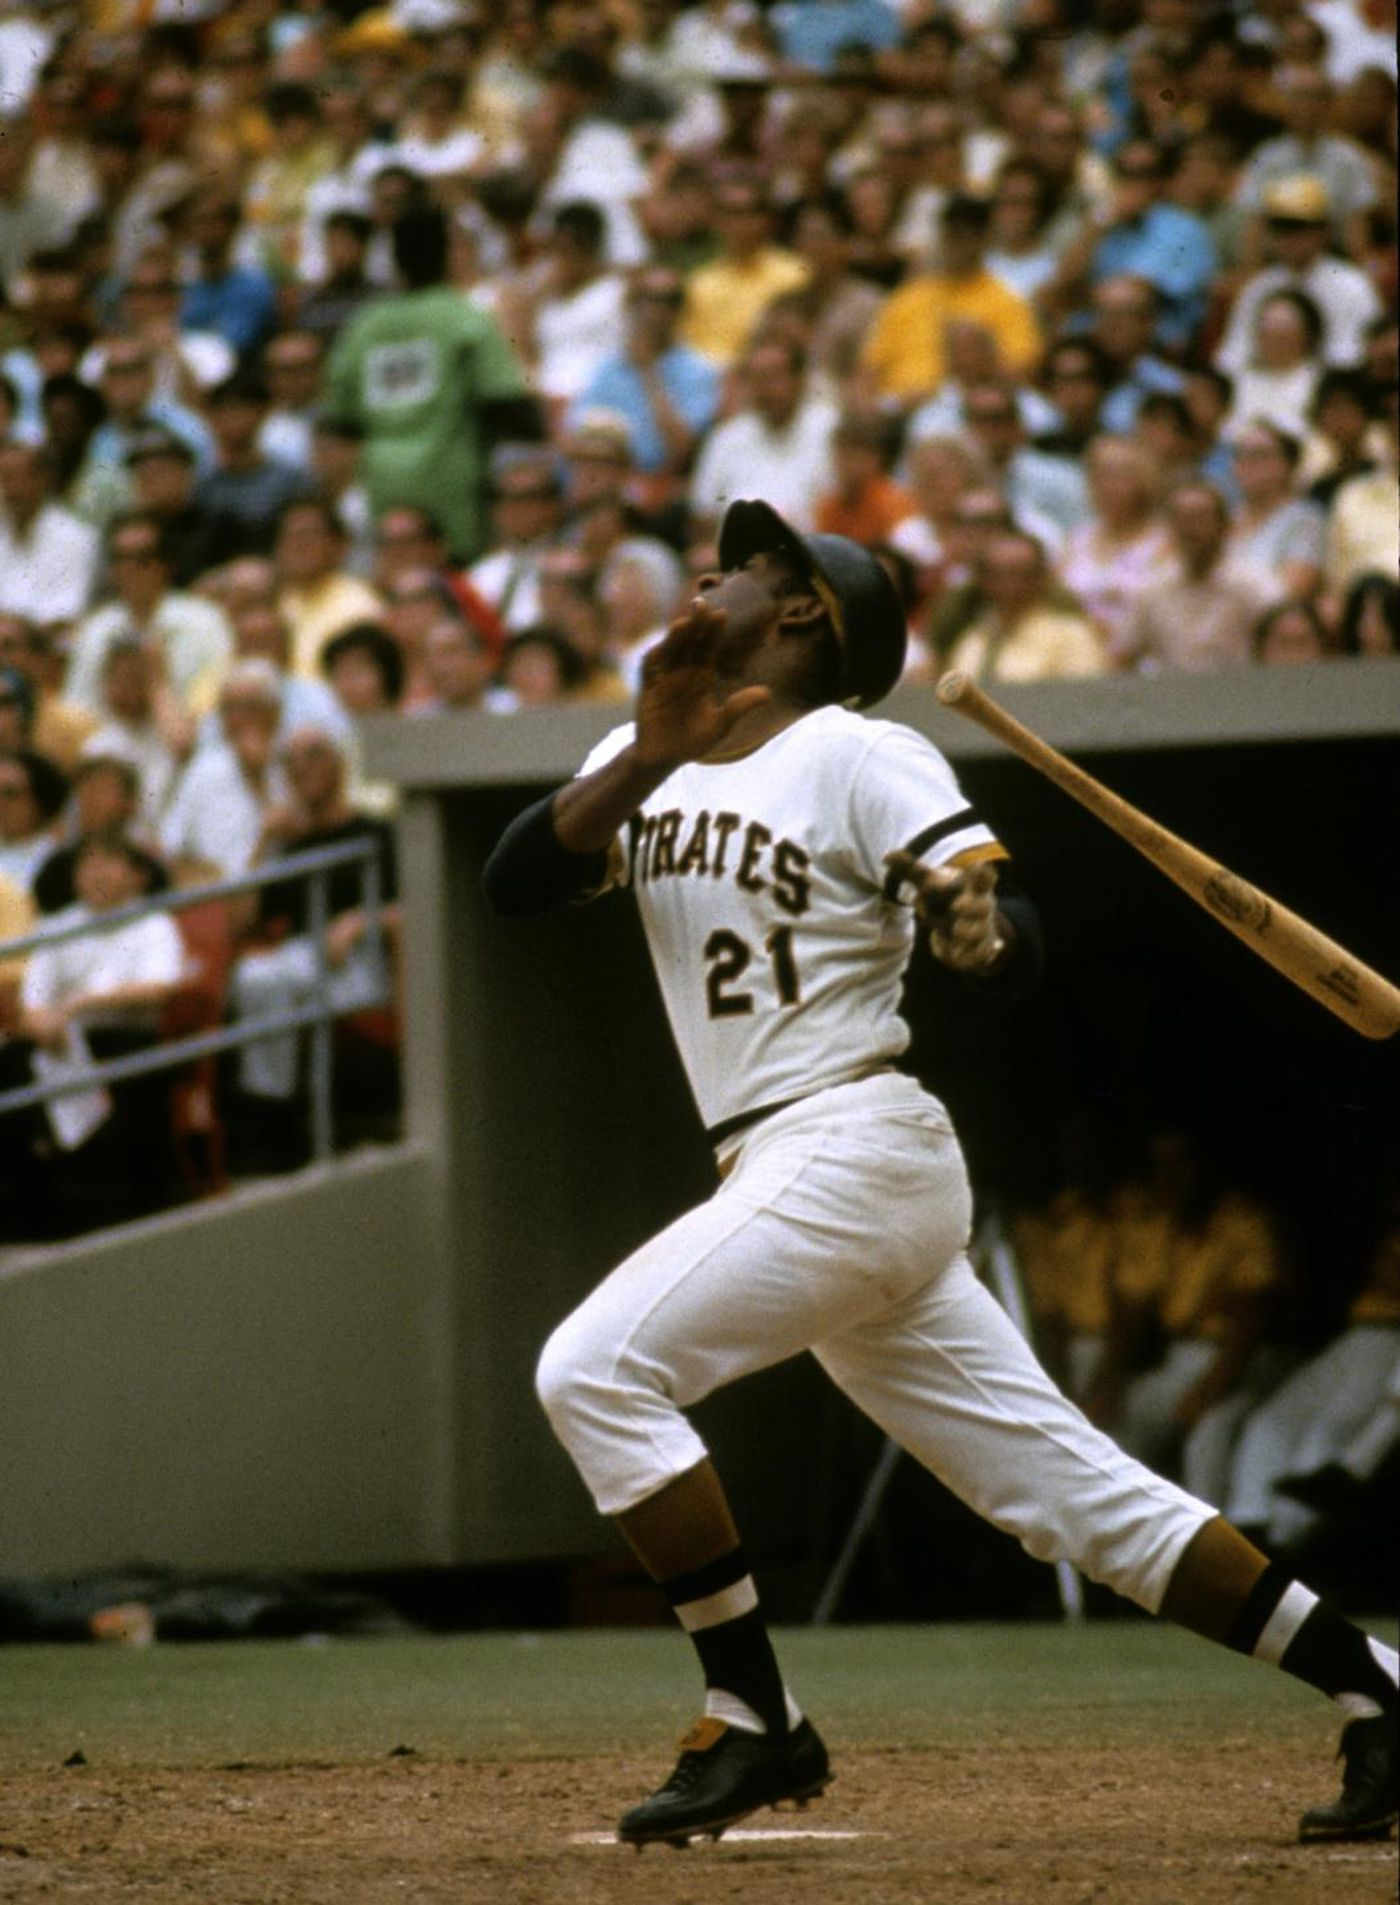 Roberto Clemente Is Praised By His Opponents In